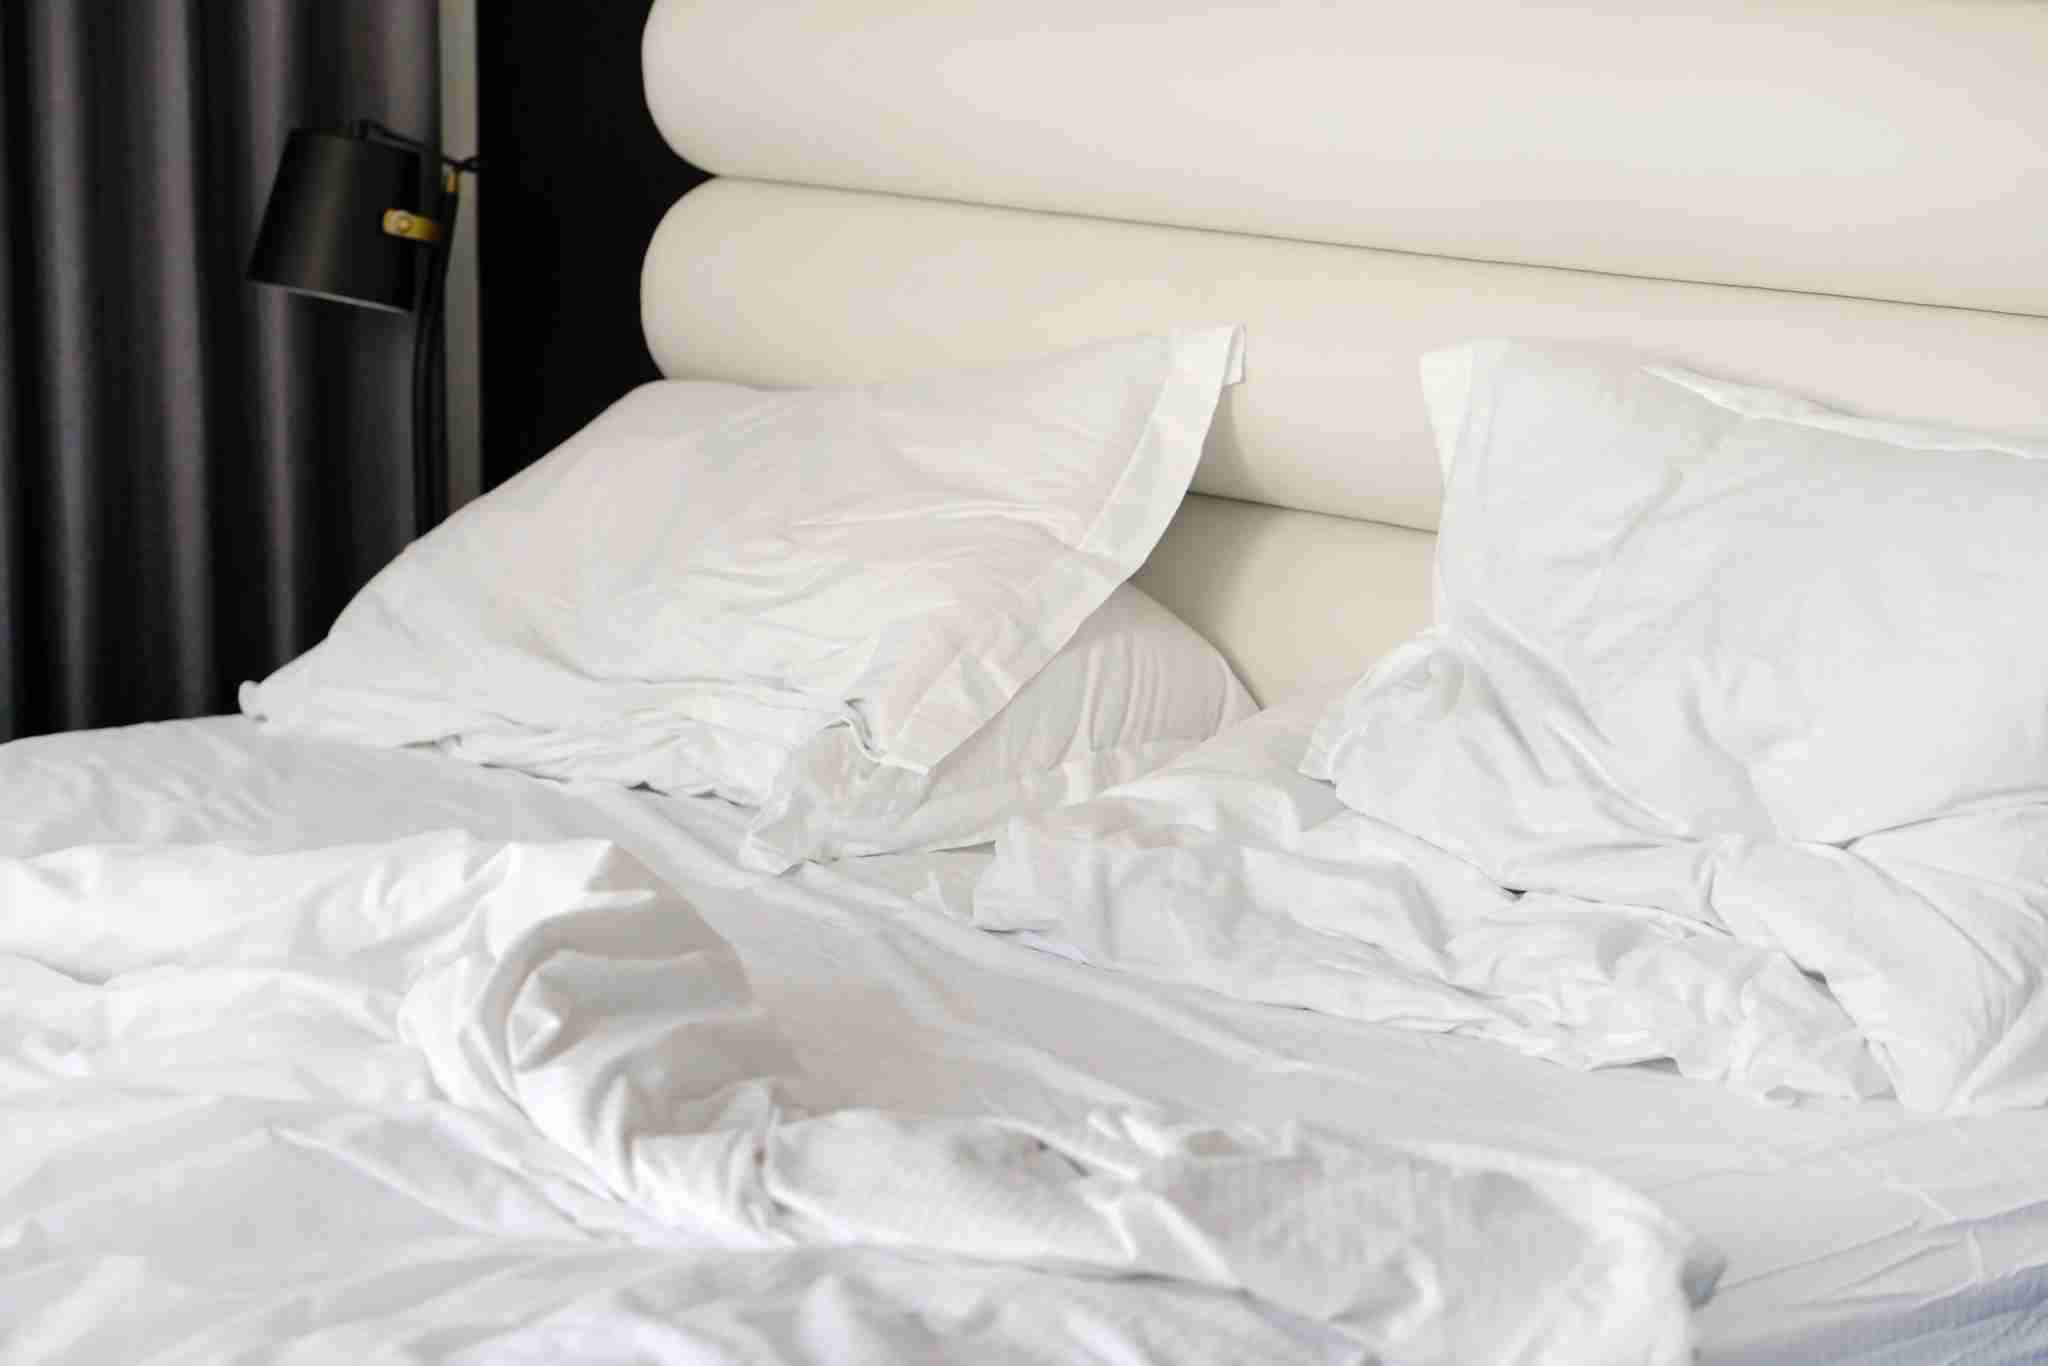 Crumpled bed in the hotel. Close-up of unfinished or messy bed after funny night, sex of new married couple. Dirty bed with decorate room. Used linens, bed sheet and pillows messed up. Igor Vershinsky / Getty Images.